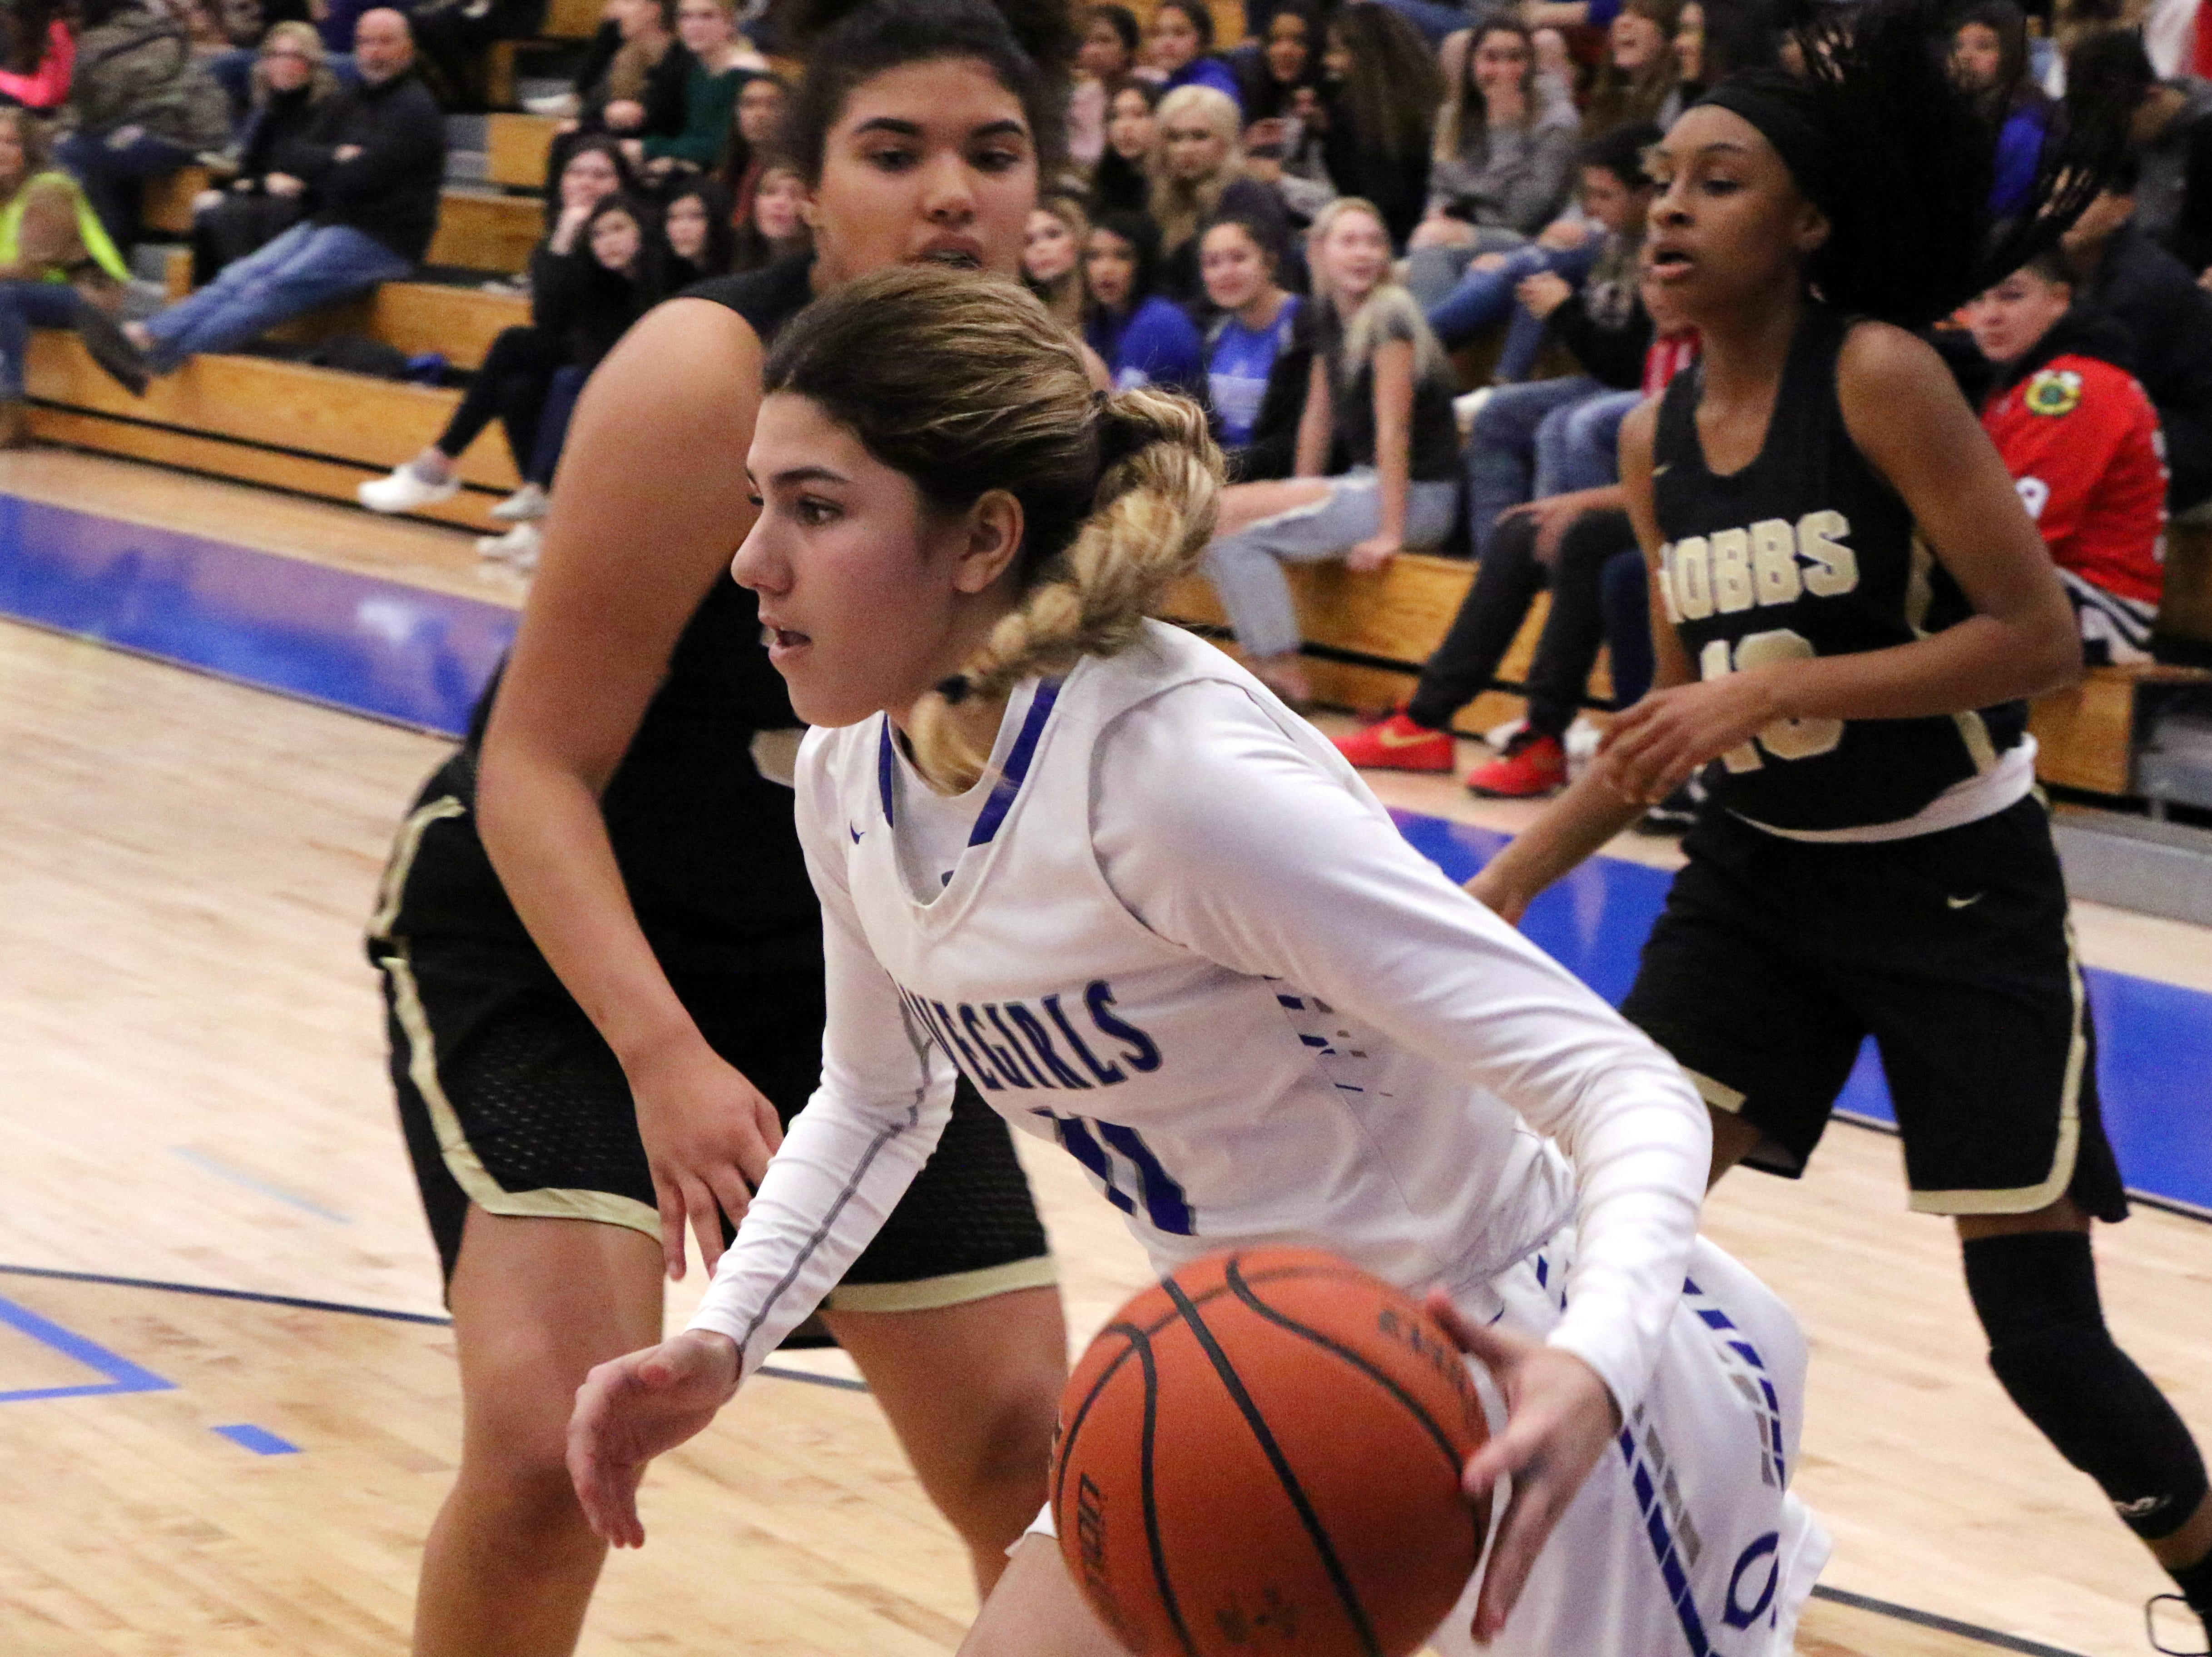 Carlsbad's Teran Tiller drives the lane during the first quarter of Friday's game against Hobbs. Hobbs won, 46-42.